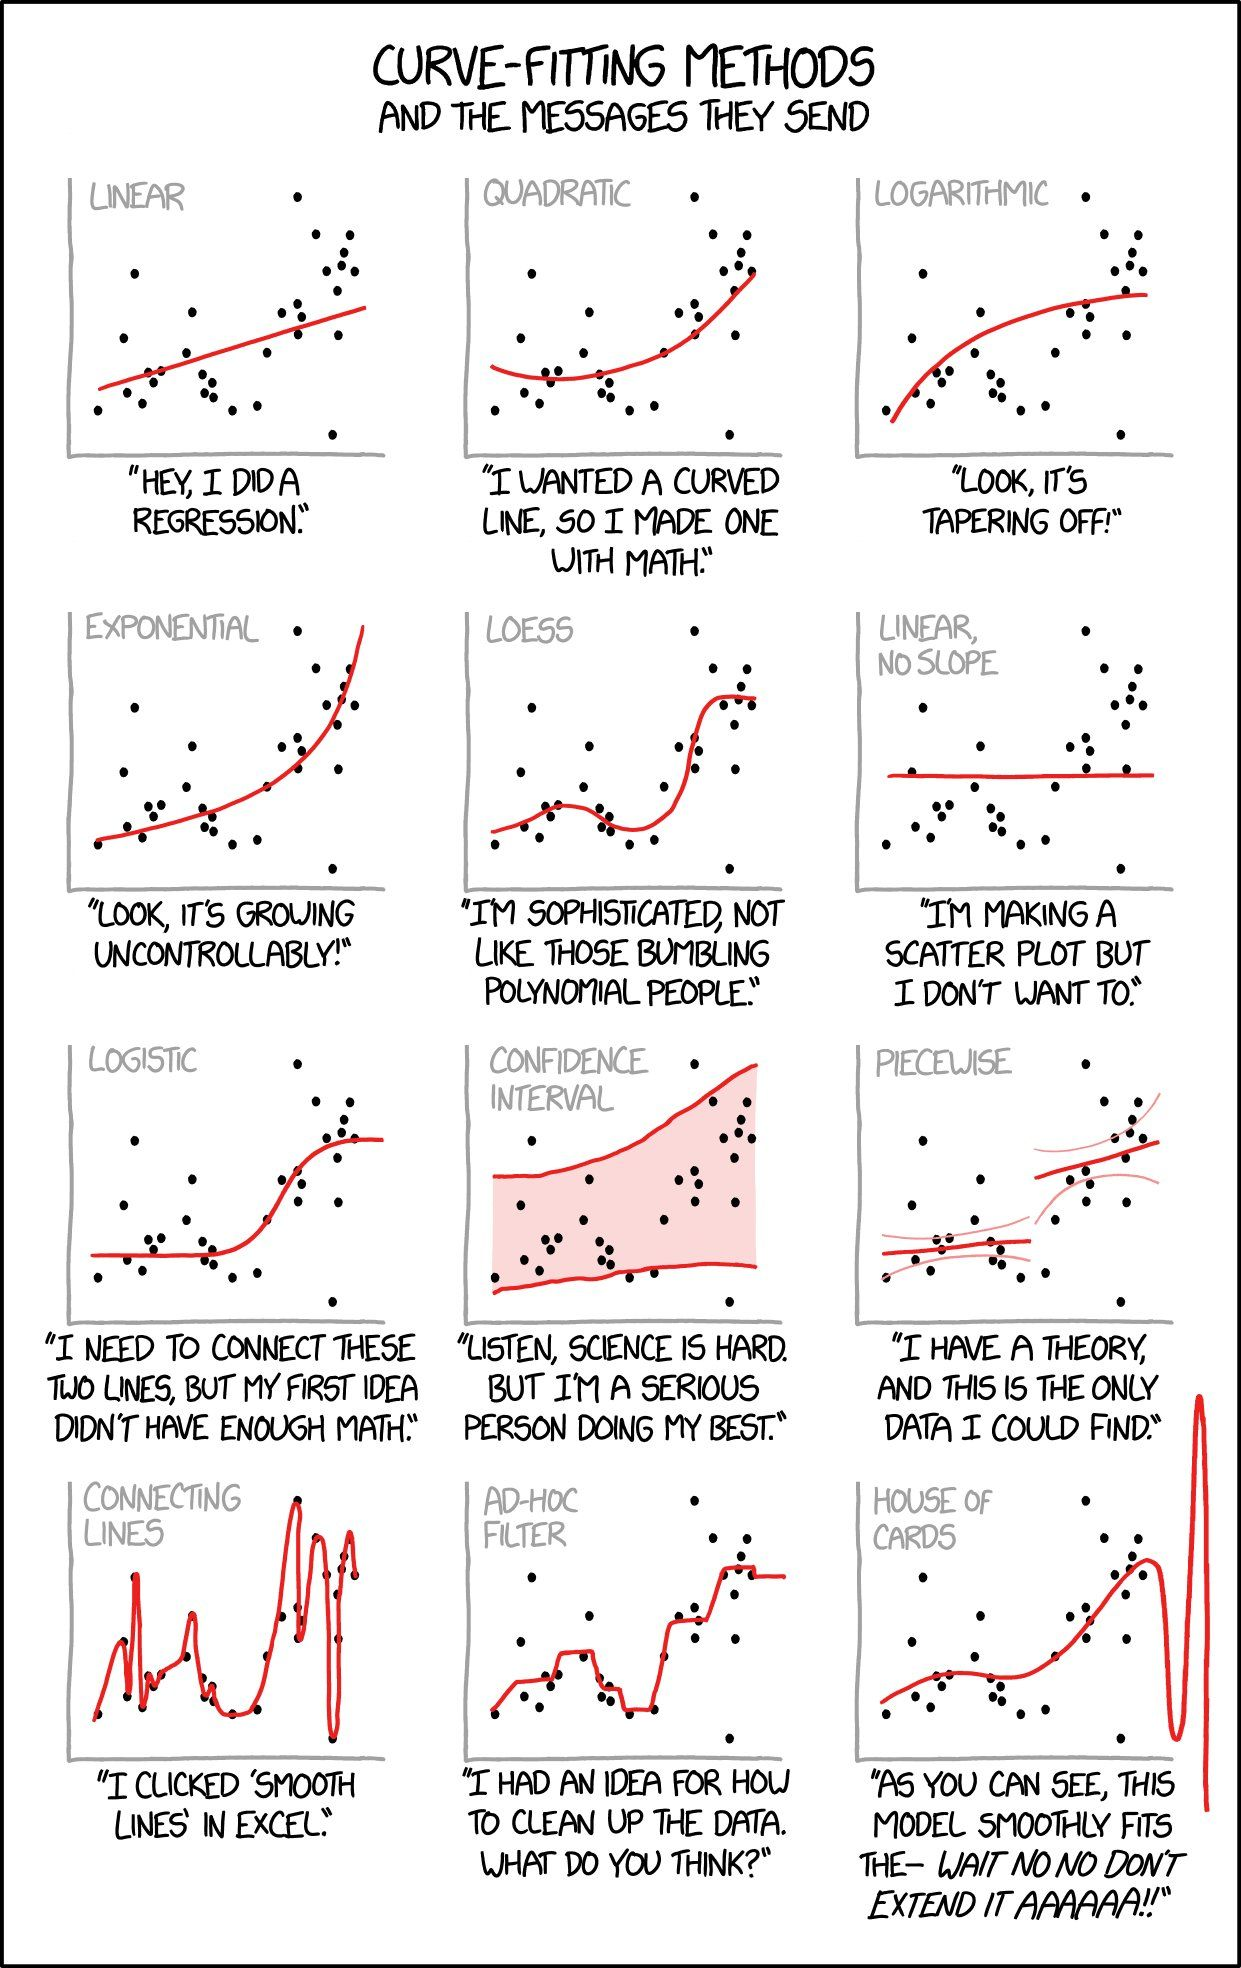 Pin By Pawel Cislo On Data Science